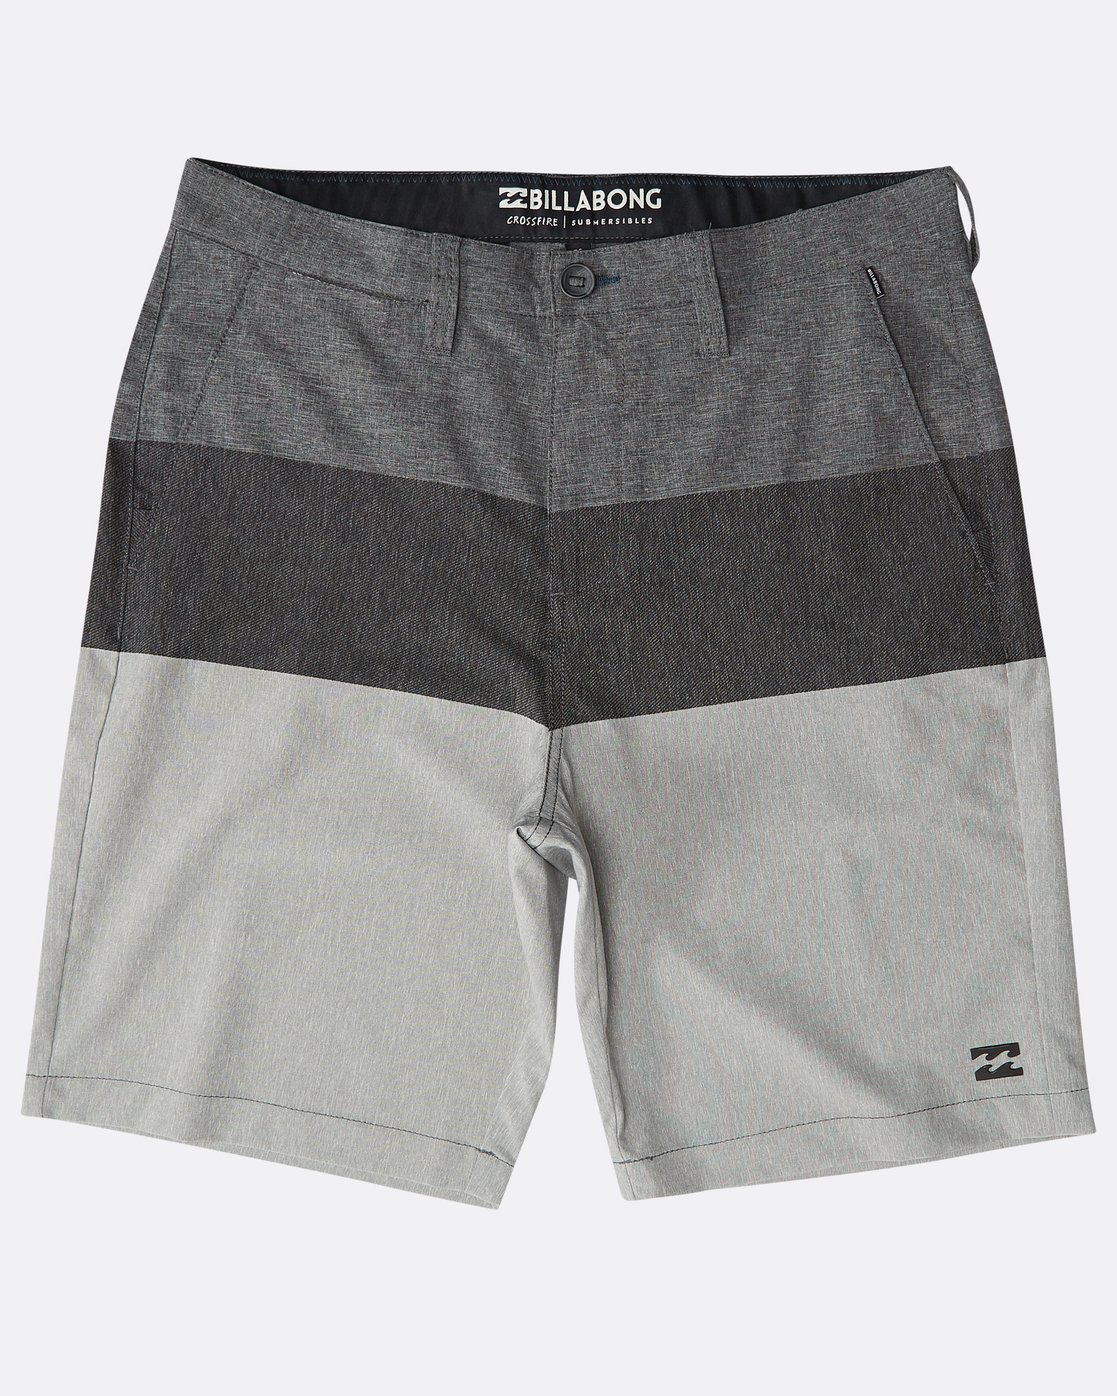 Airlite Crossfire Submersibles X Crossfire Shorts f7yYbg6v